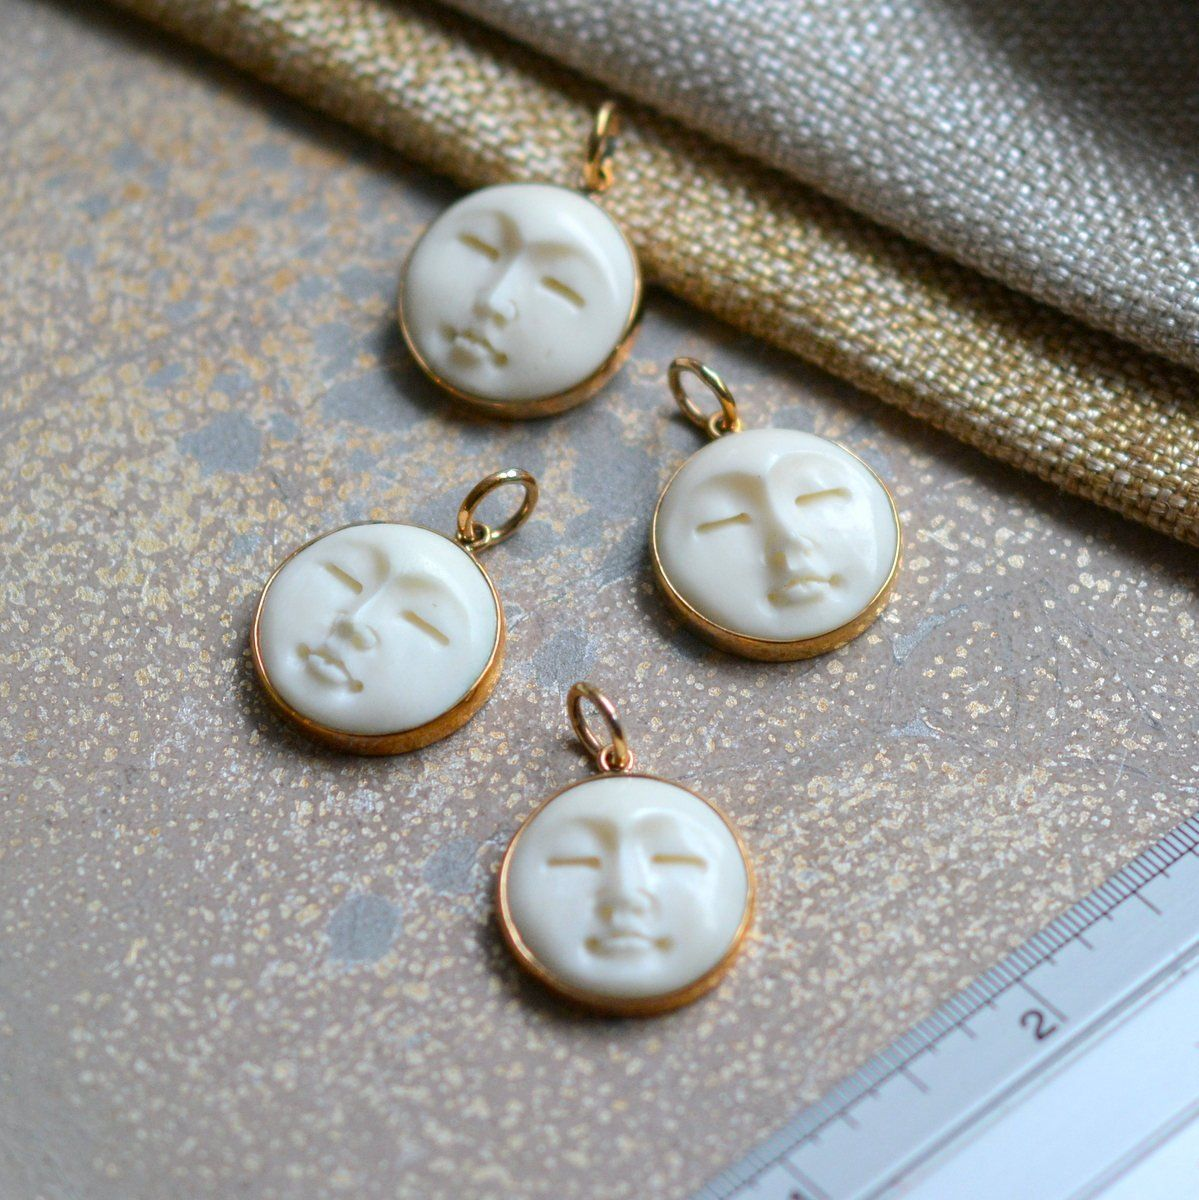 1 20mm Carved Bone Moon Face Bronze Pendant Bone Carving Set In Natural Bronze Sleeping Moon Choose Qty Bs17 1107a Bone Carving Bronze Pendant Cow Bones